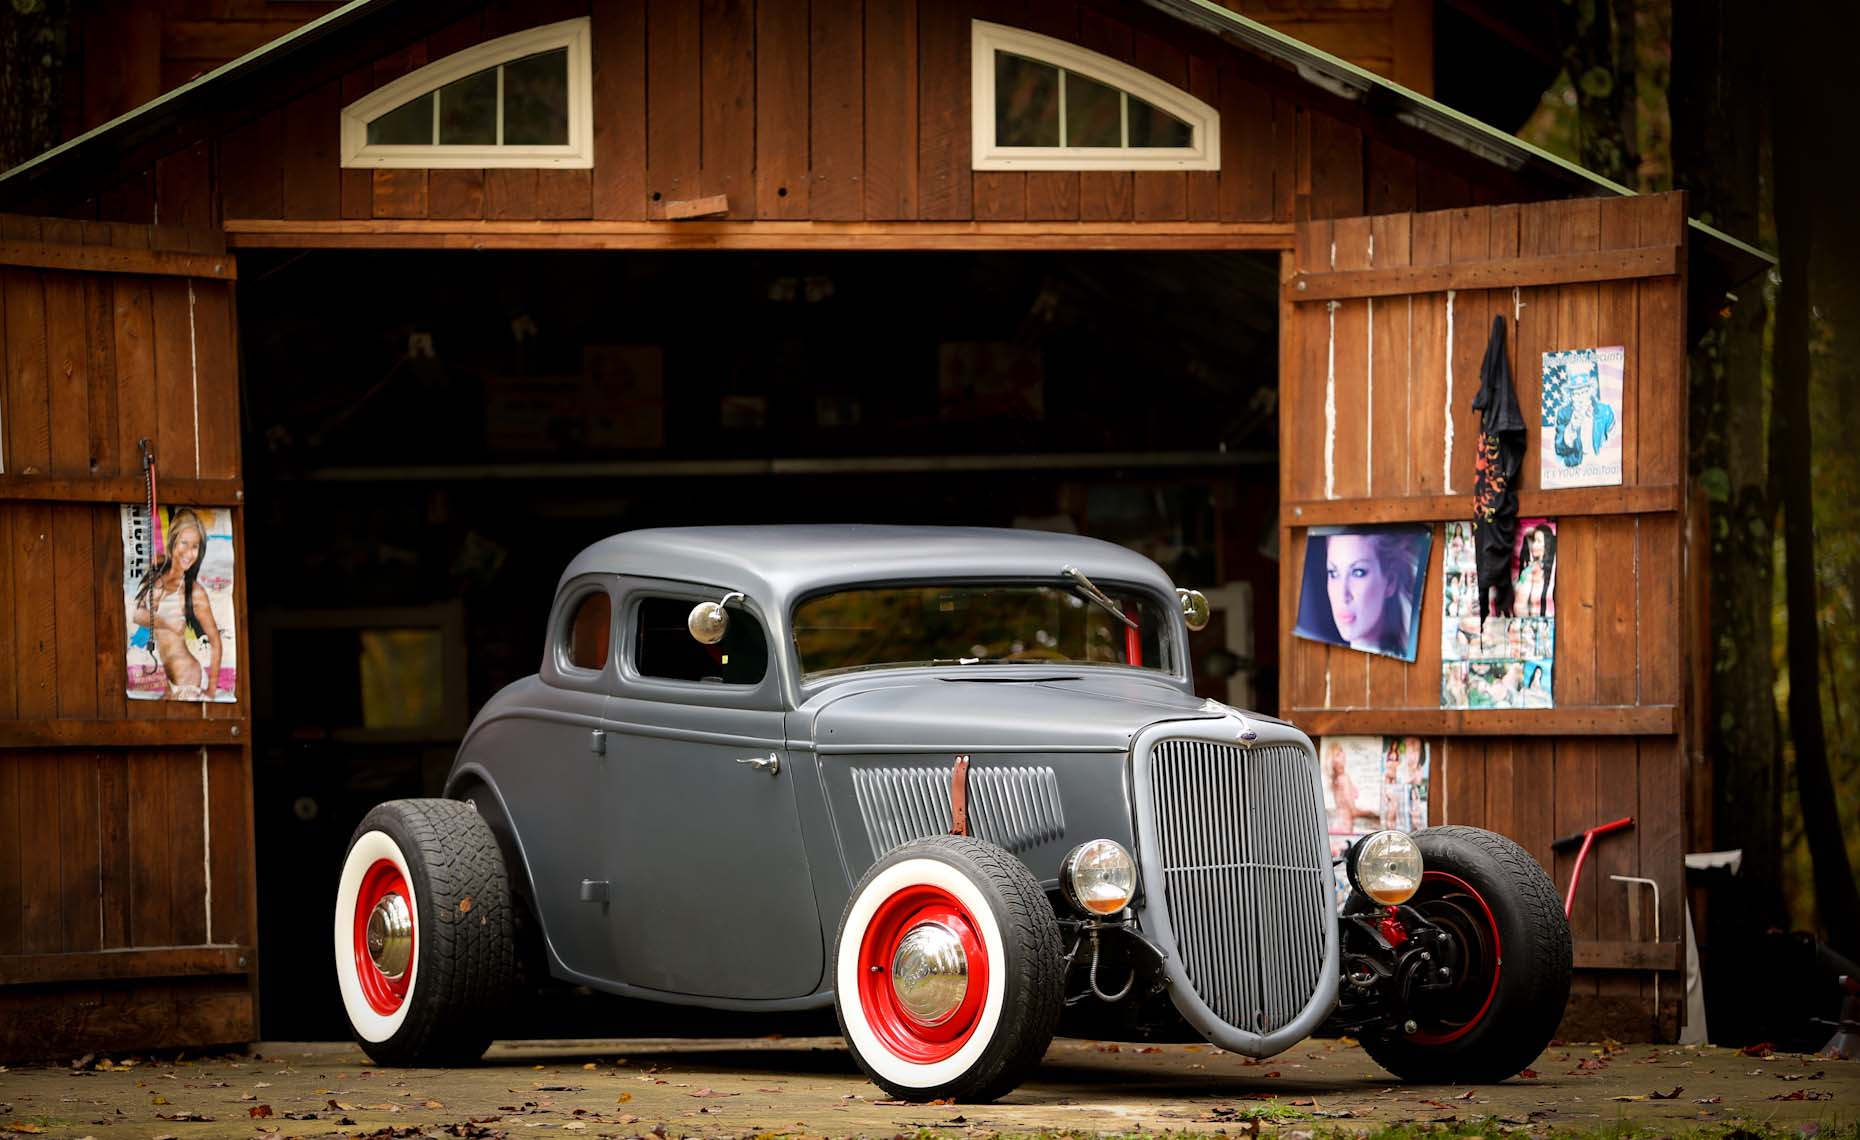 The 34 Ford